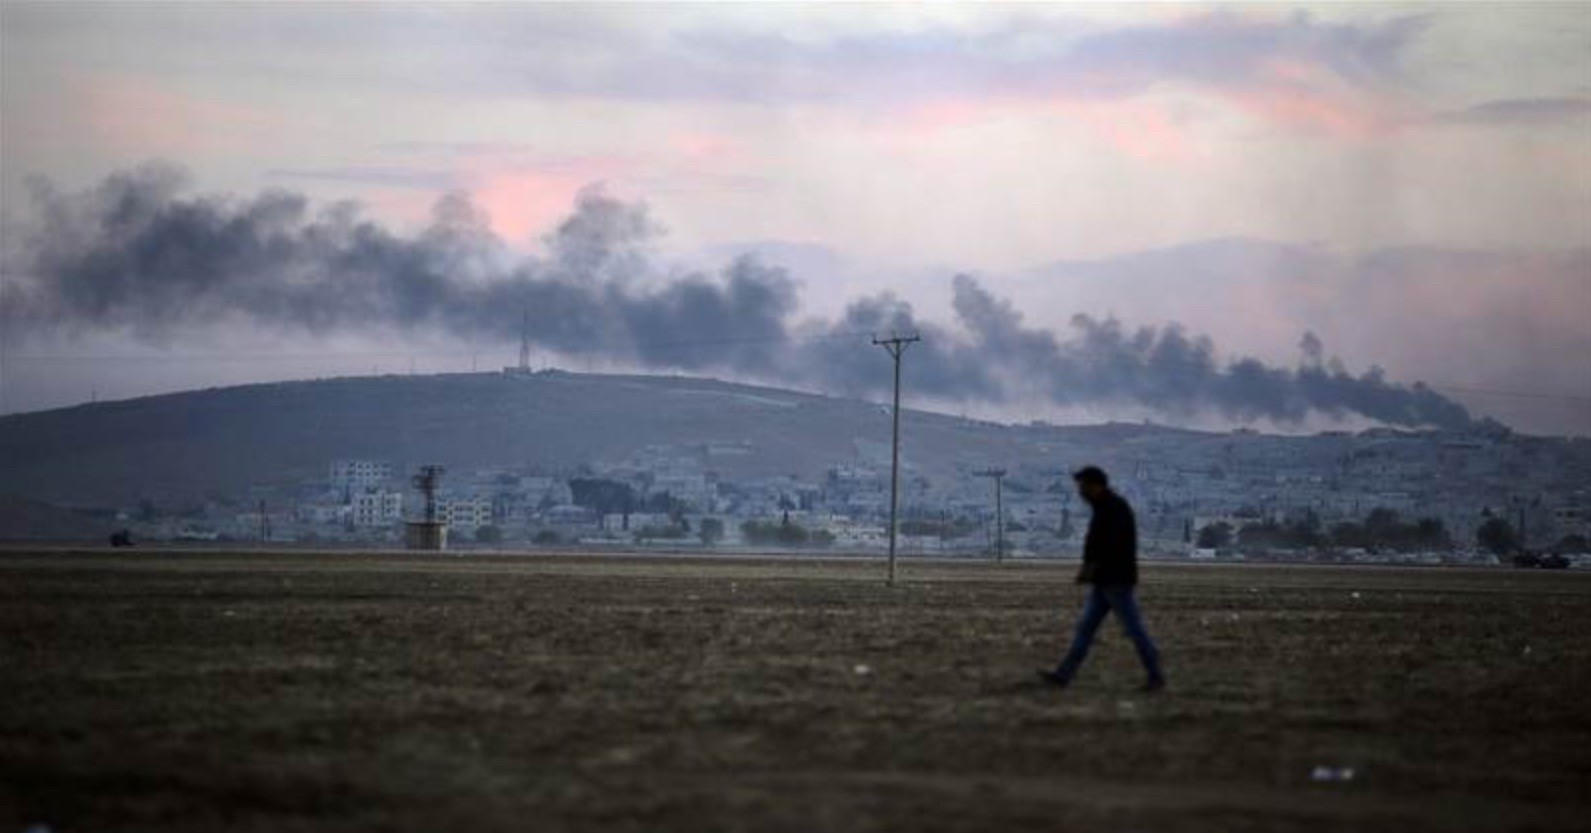 A Turkish Kurd walks in Mursitpinar on the outskirts of Suruc, at the Turkey-Syria border, as smoke from a fire caused by a strike rises over Kobani, inside Syria, on Oct. 8. Kobani and its surrounding areas have been under attack since mid-September, as fighting intensified between Syrian Kurds and Islamic State militants, with ISIS capturing dozens of nearby Kurdish villages.